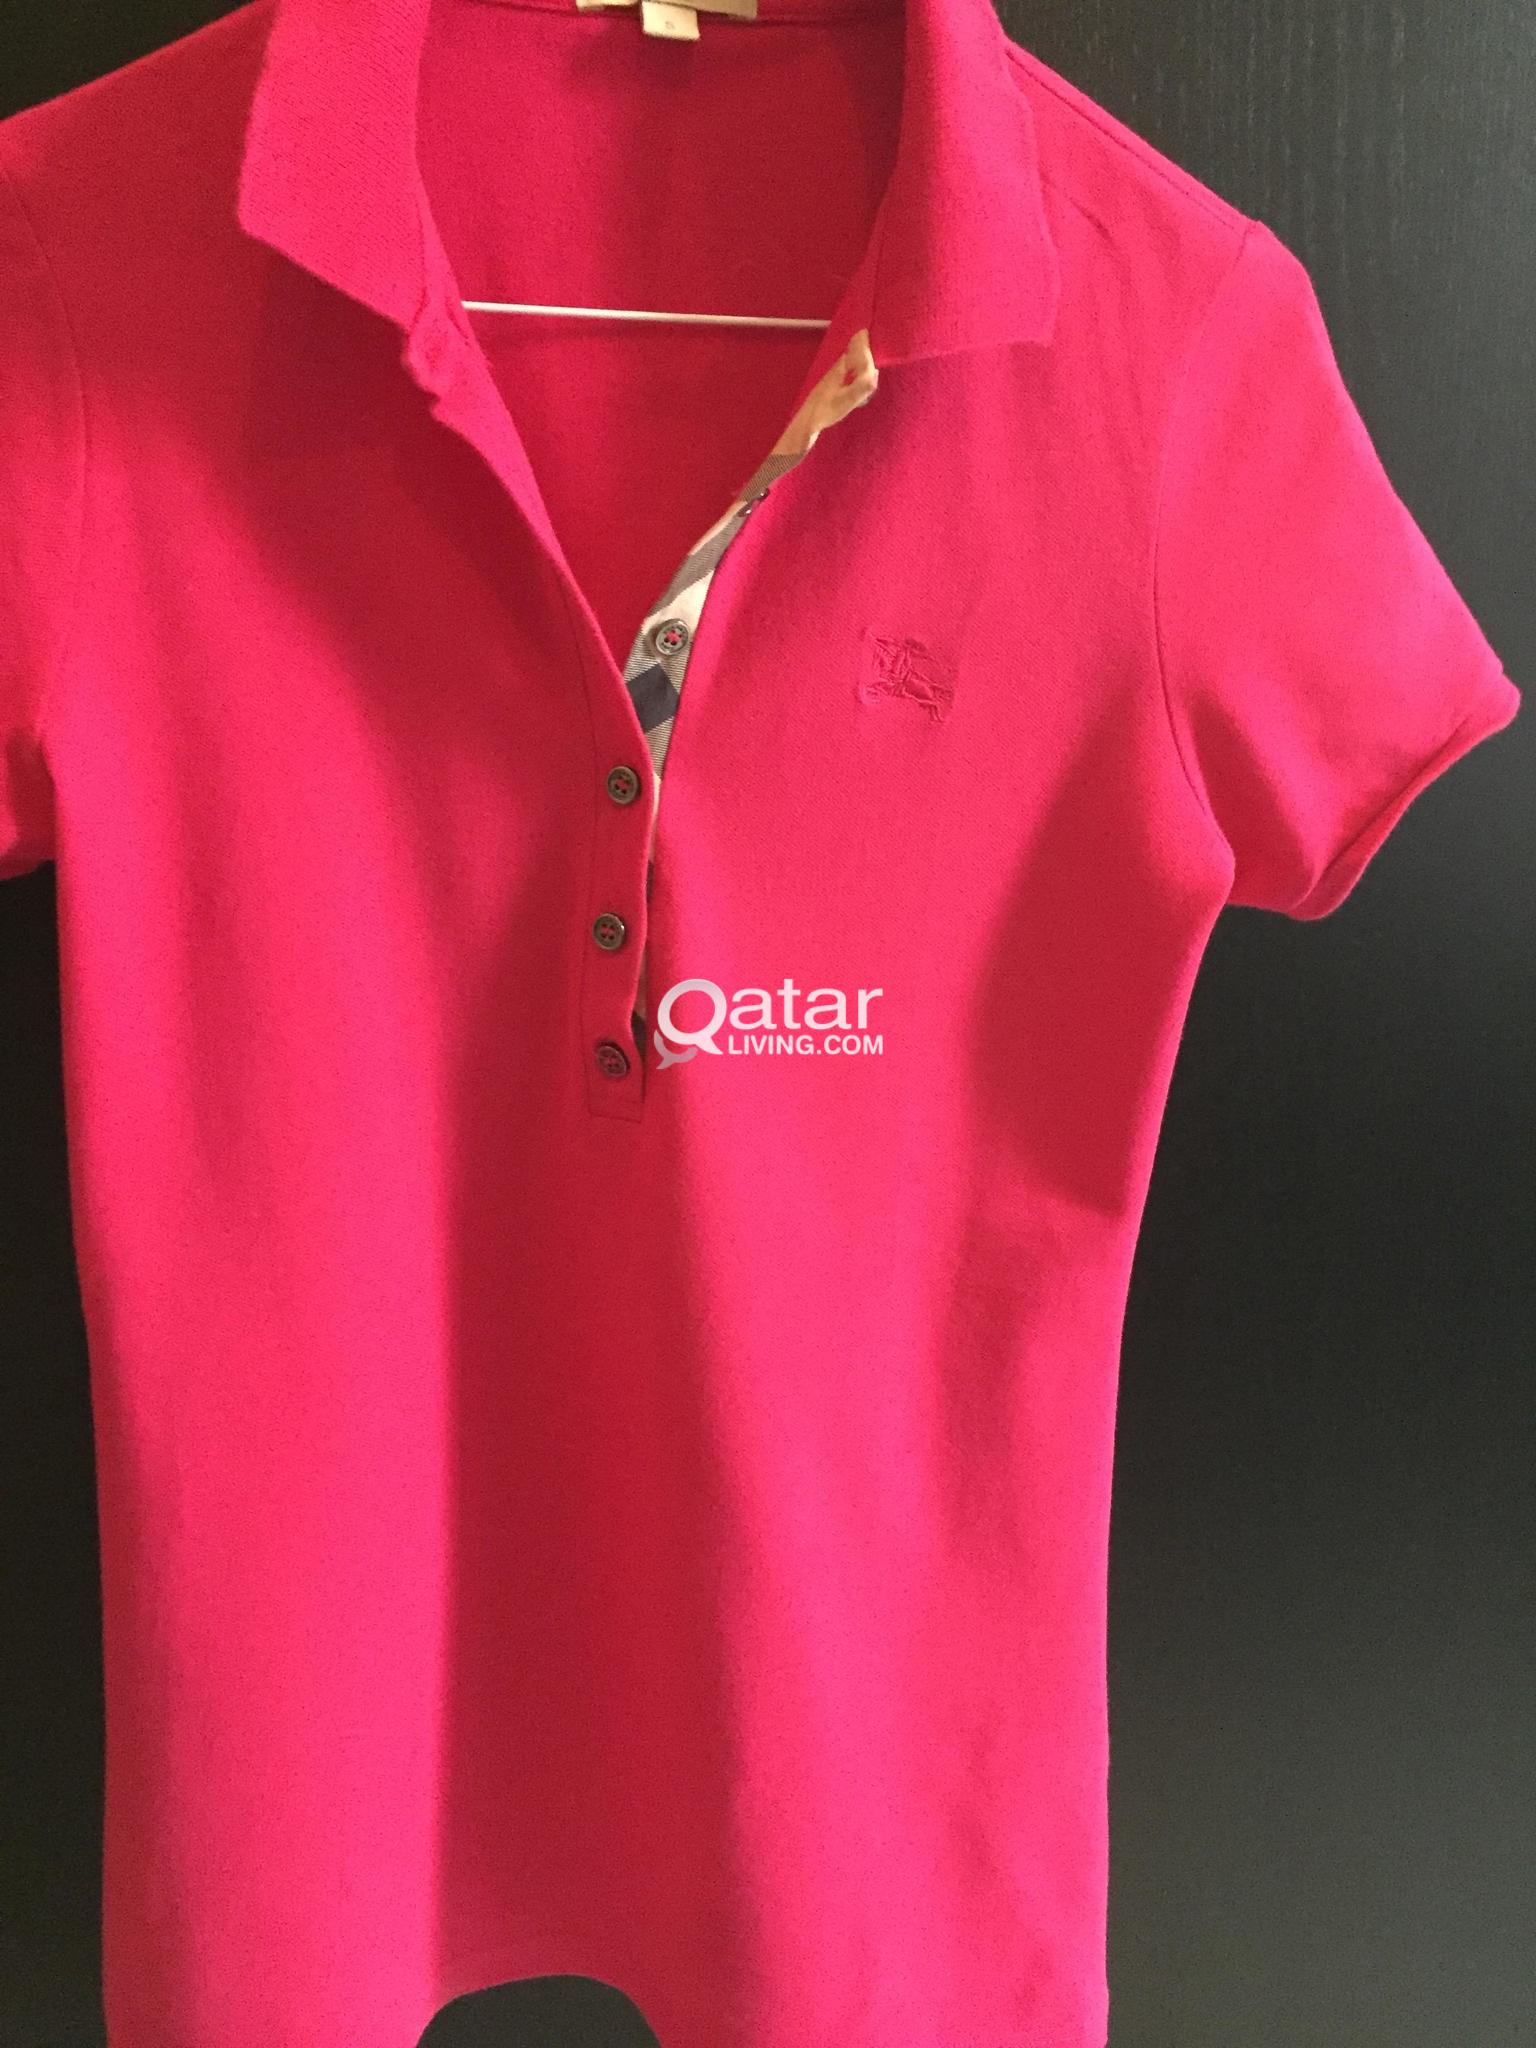 7d0cc3362 Authentic Burberry polo shirt size small | Qatar Living